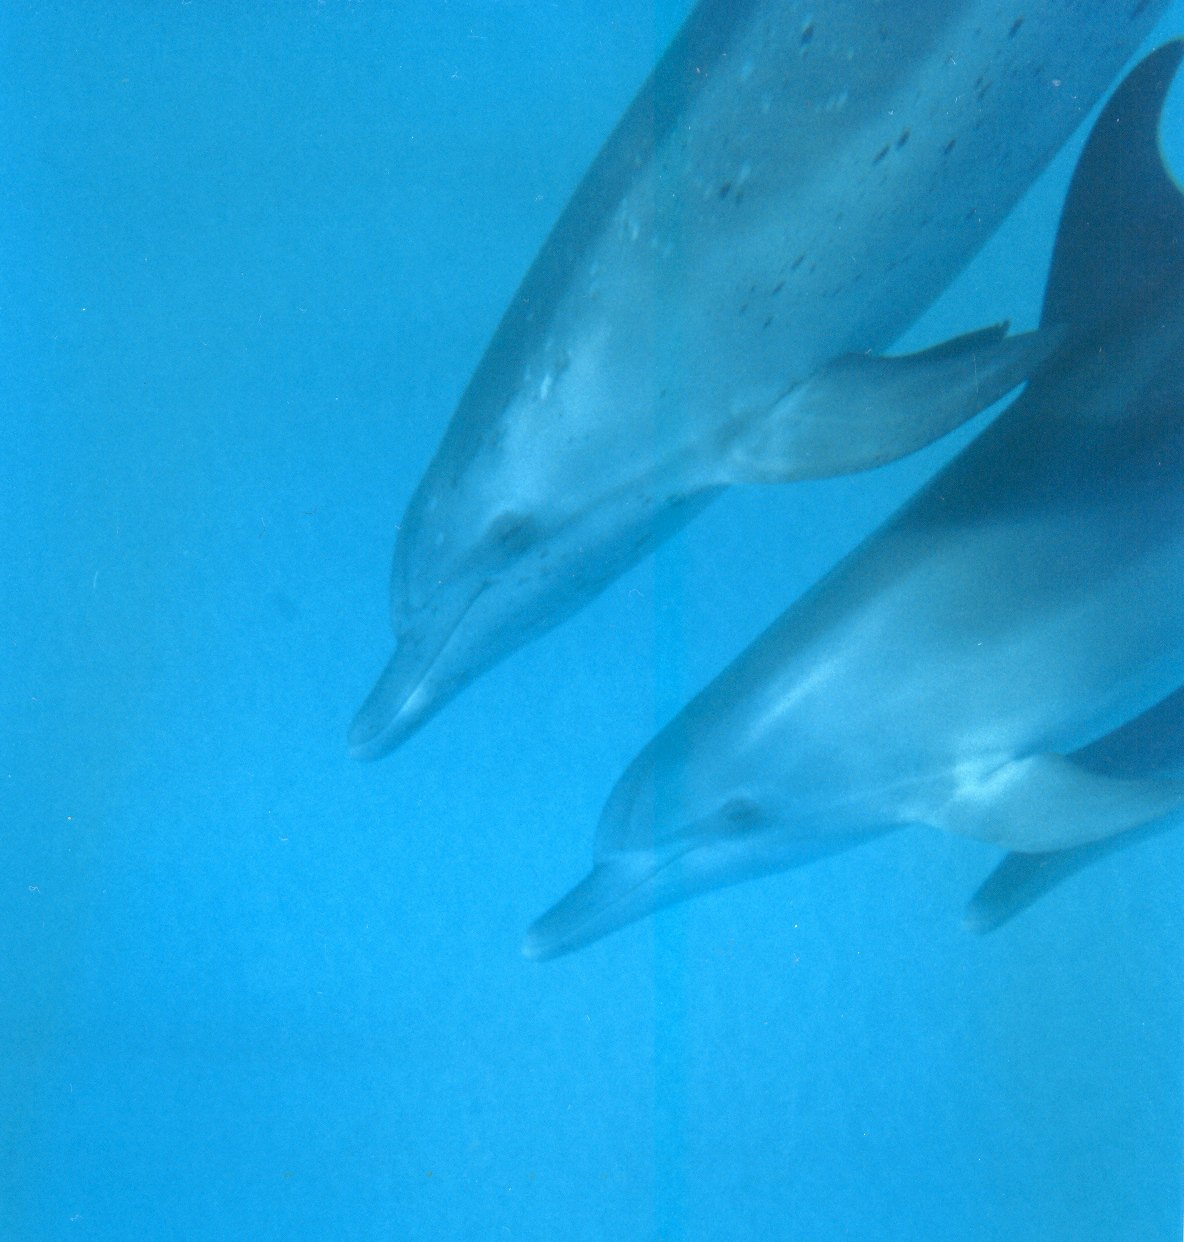 Swim with wild spotted dolphins in The Bahamas